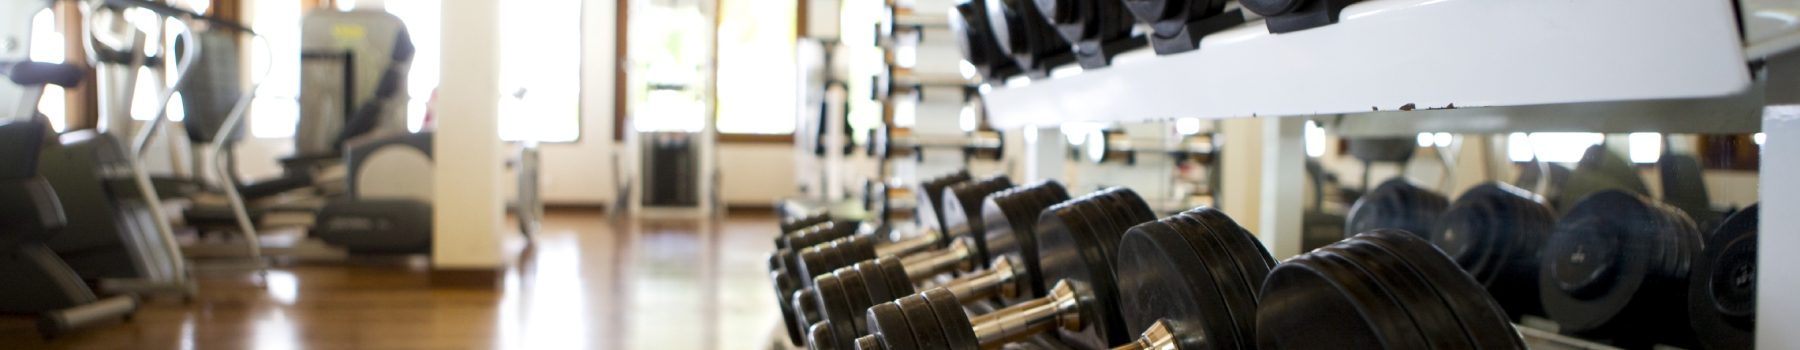 5 Tips For Building Your Team Of Gym Employees